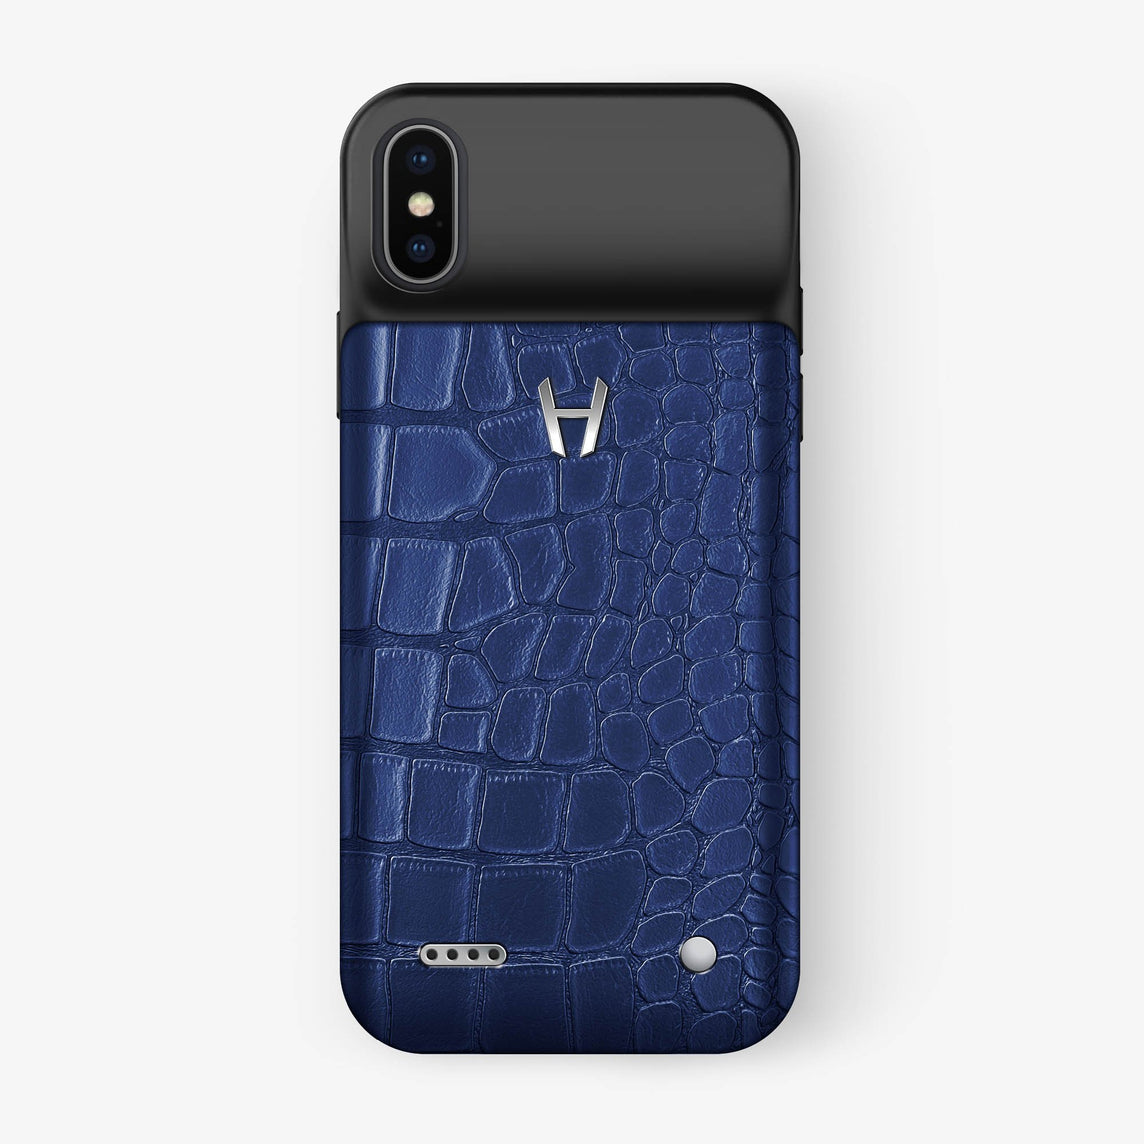 Alligator Battery Case iPhone X/Xs | Navy Blue - Stainless Steel without-personalization